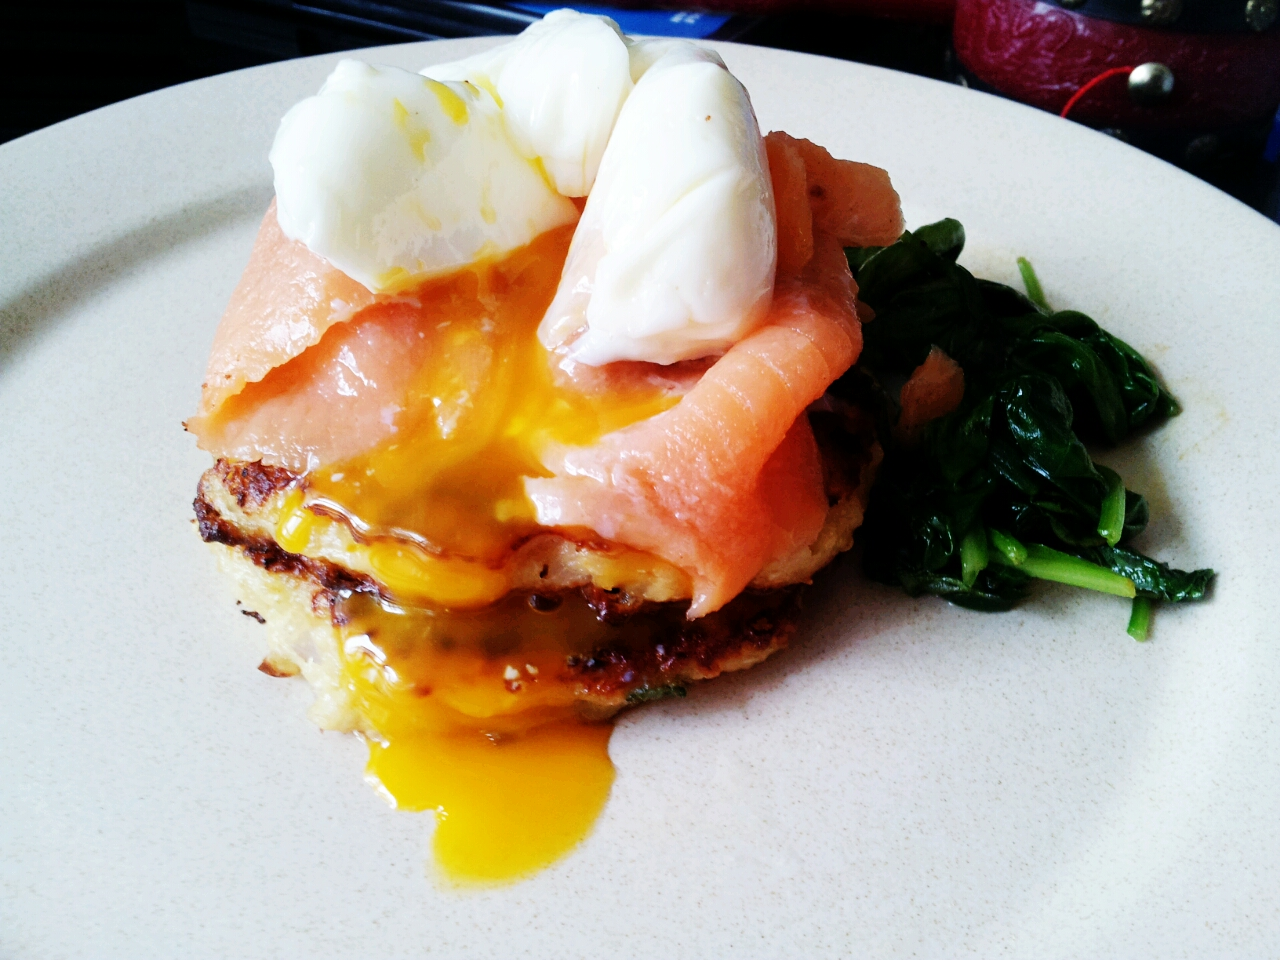 Poached Egg, Salmon, Quinoa Cakes and Wilted Spinach | Kelly Siew ...